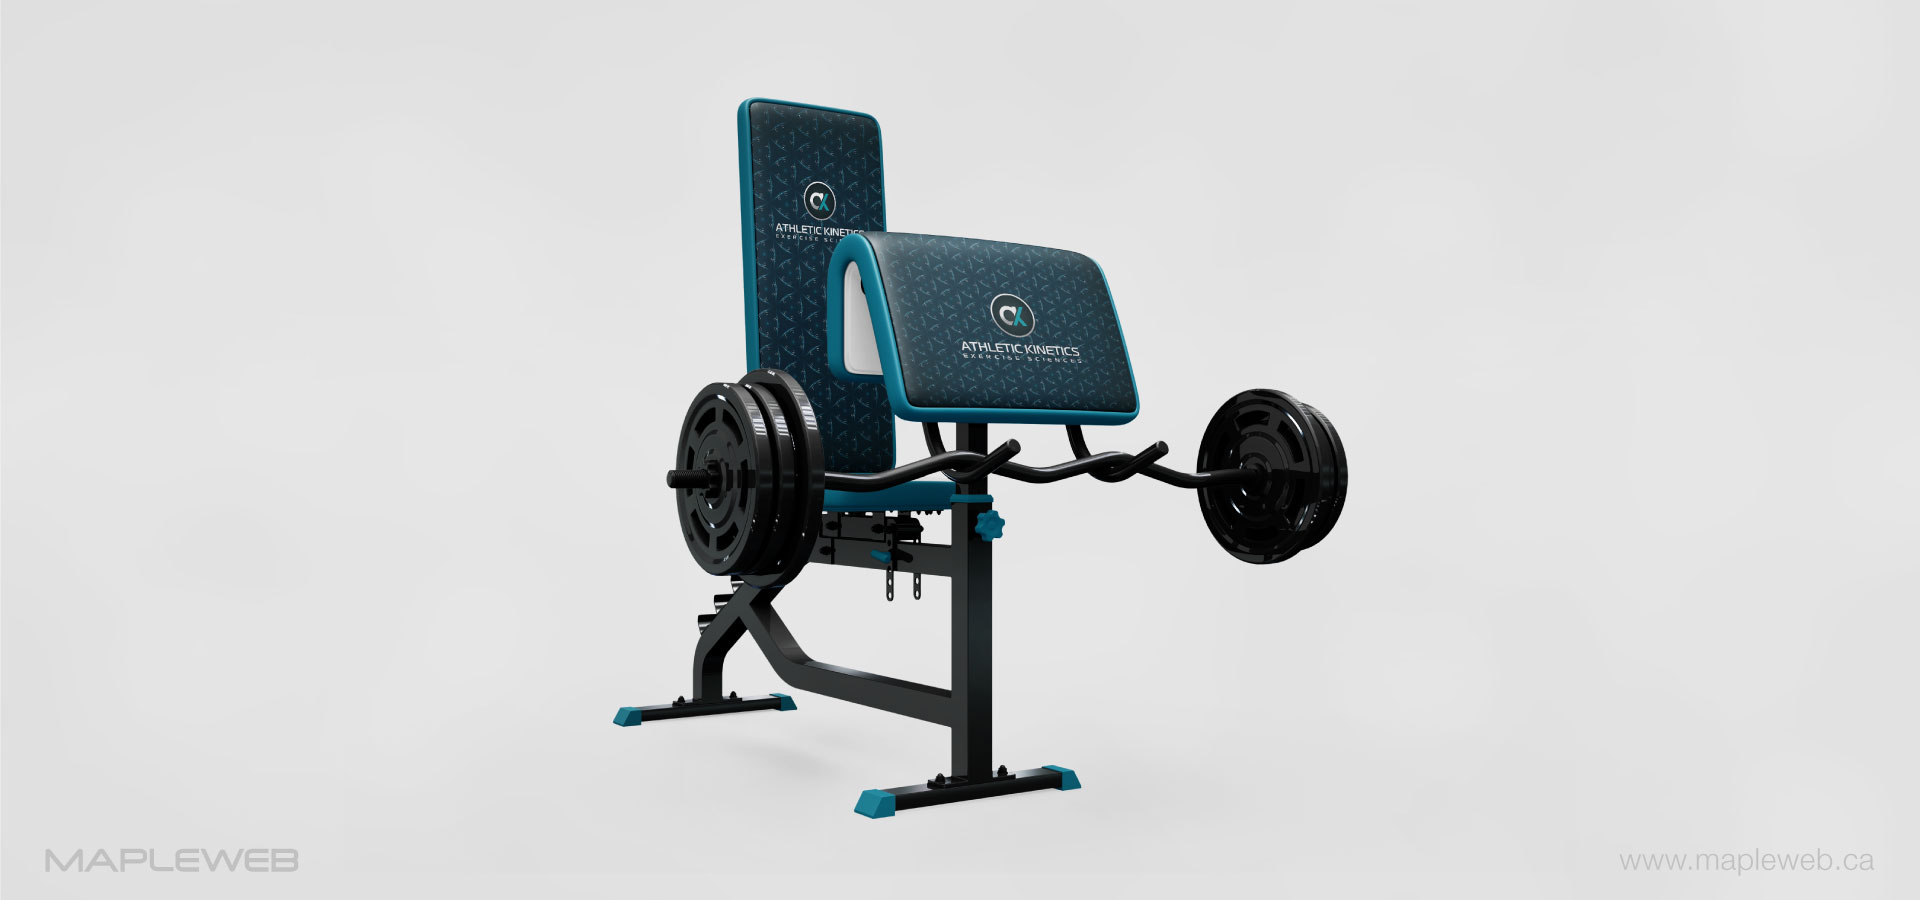 athletic-kinetics-brand-logo-design-by-mapleweb-vancouver-canada-weight-lister-and-exercise-machine-mock